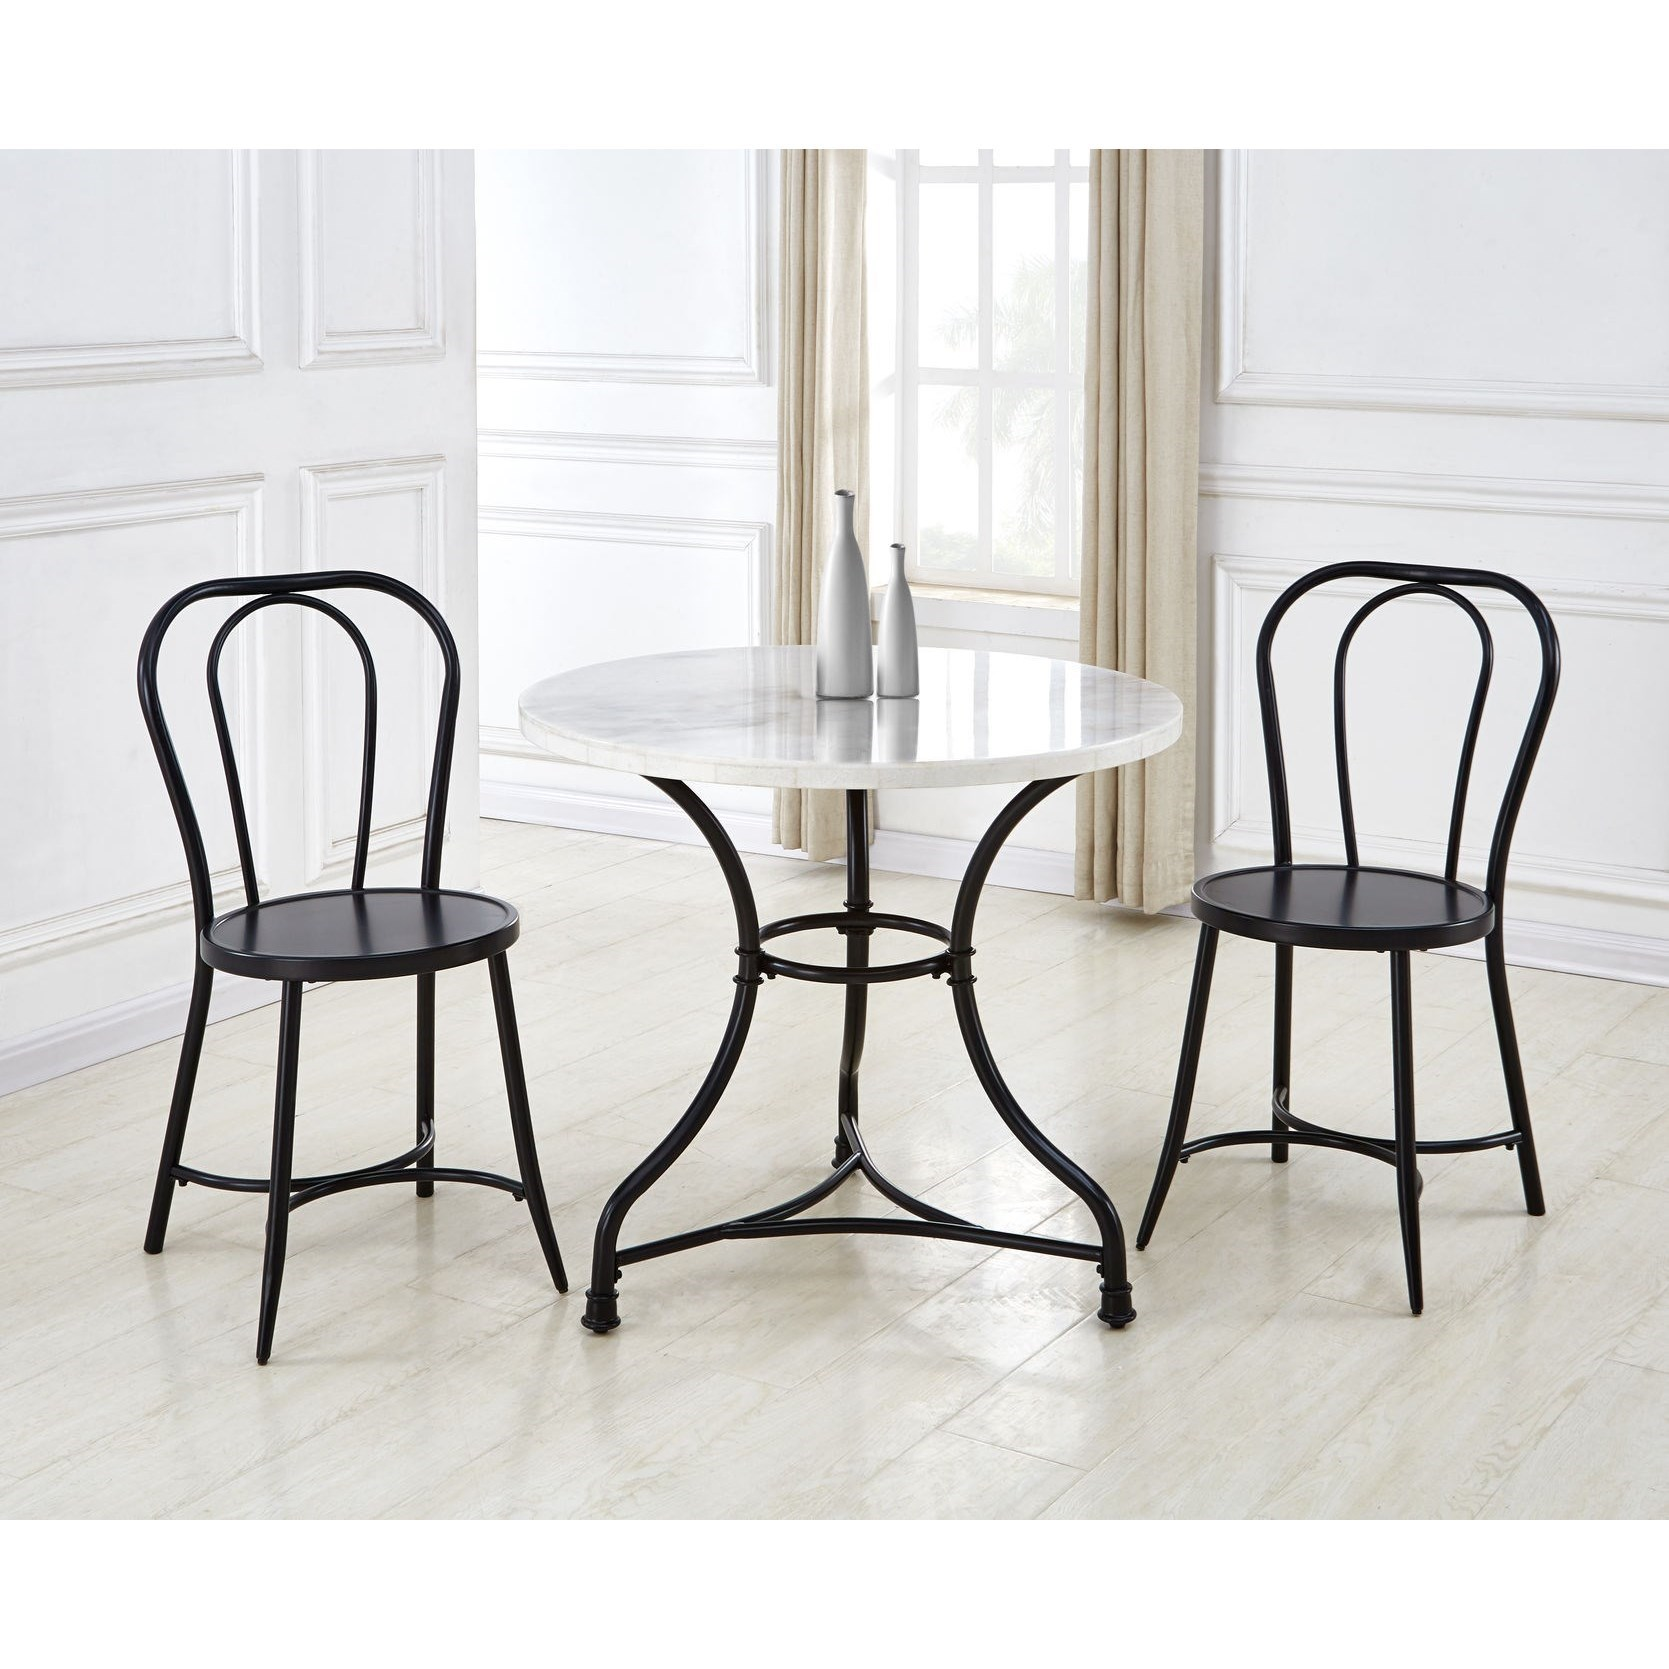 Contemporary 3-Piece Bistro Table and Chair Set with White Marble Top